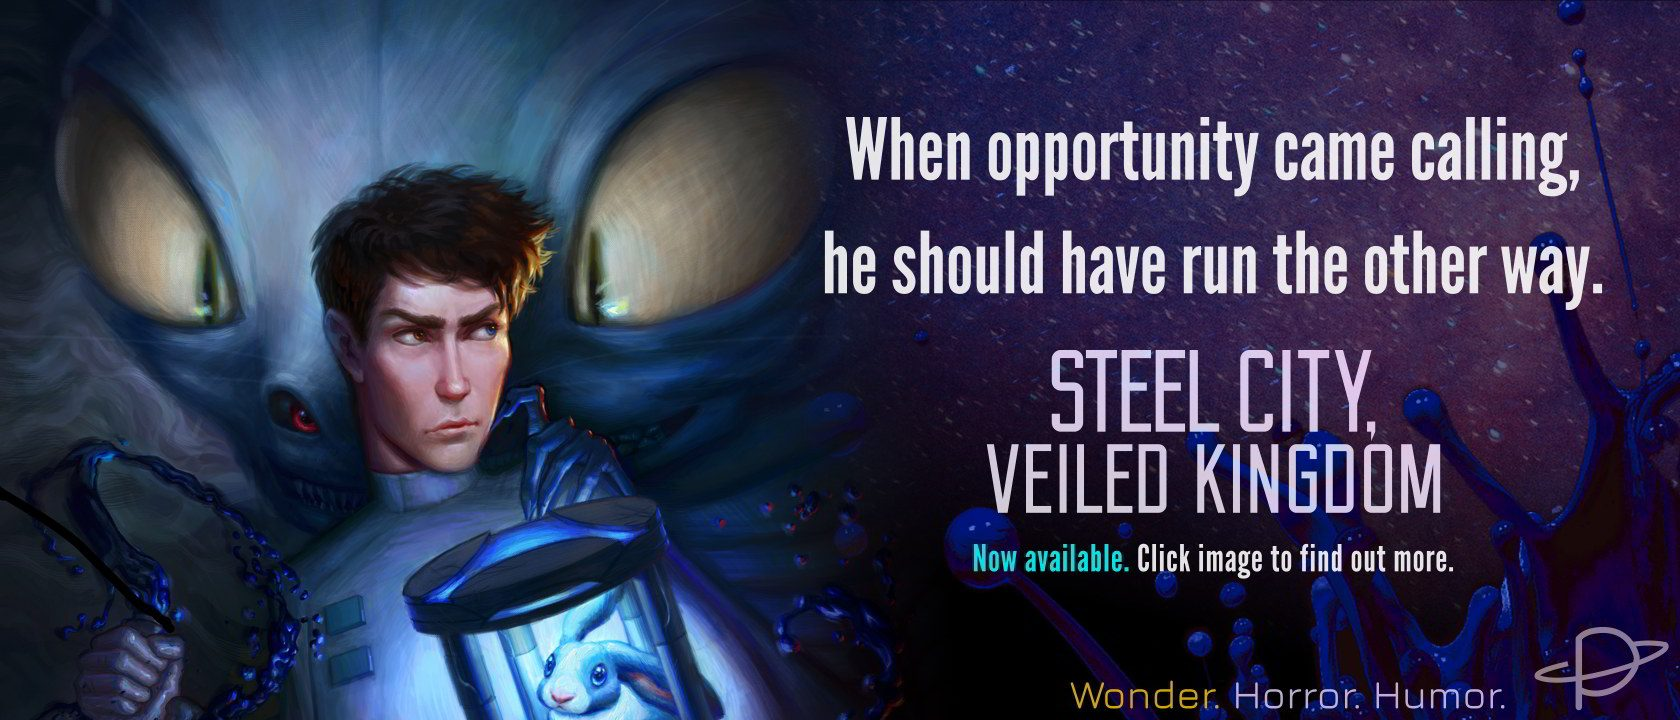 Click here to visit the STEEL CITY, VEILED KINGDOM information page.